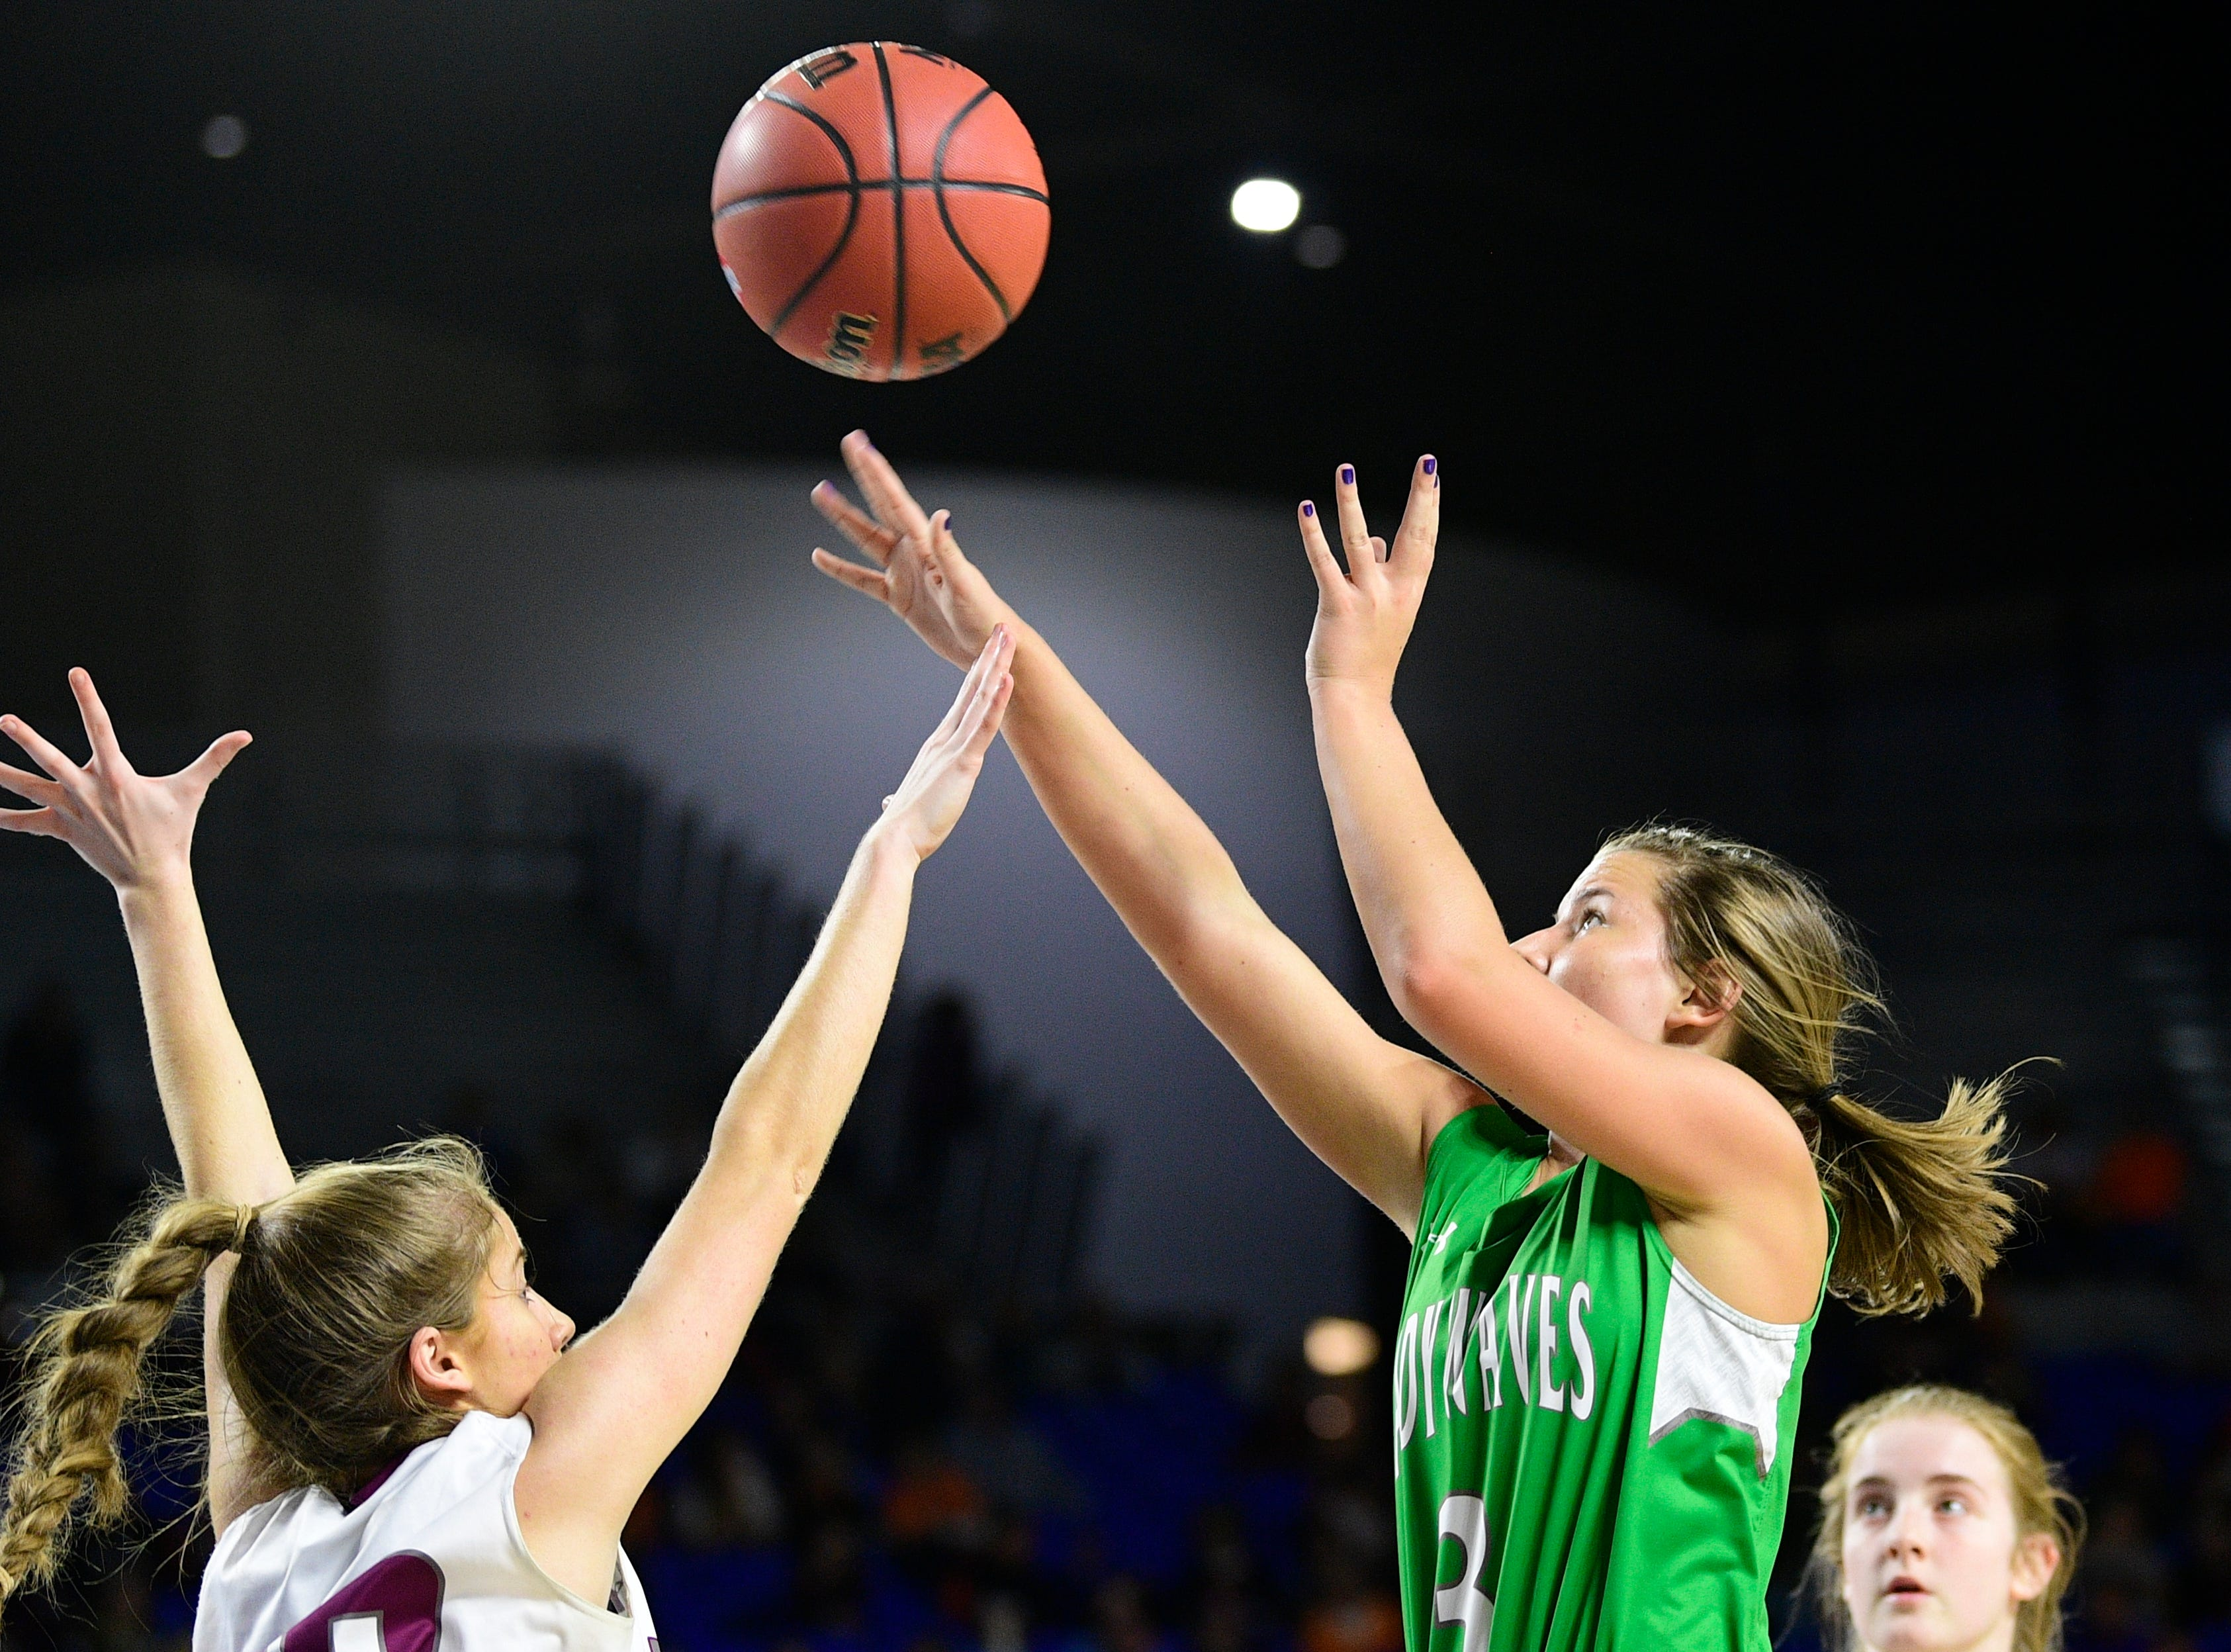 Midway's Rebecca Lemasters (3) shoots the ball during a game between Eagleville and Midway at the TSSAA girls state tournament at the Murphy Center in Murfreesboro, Tennessee on Thursday, March 7, 2019.